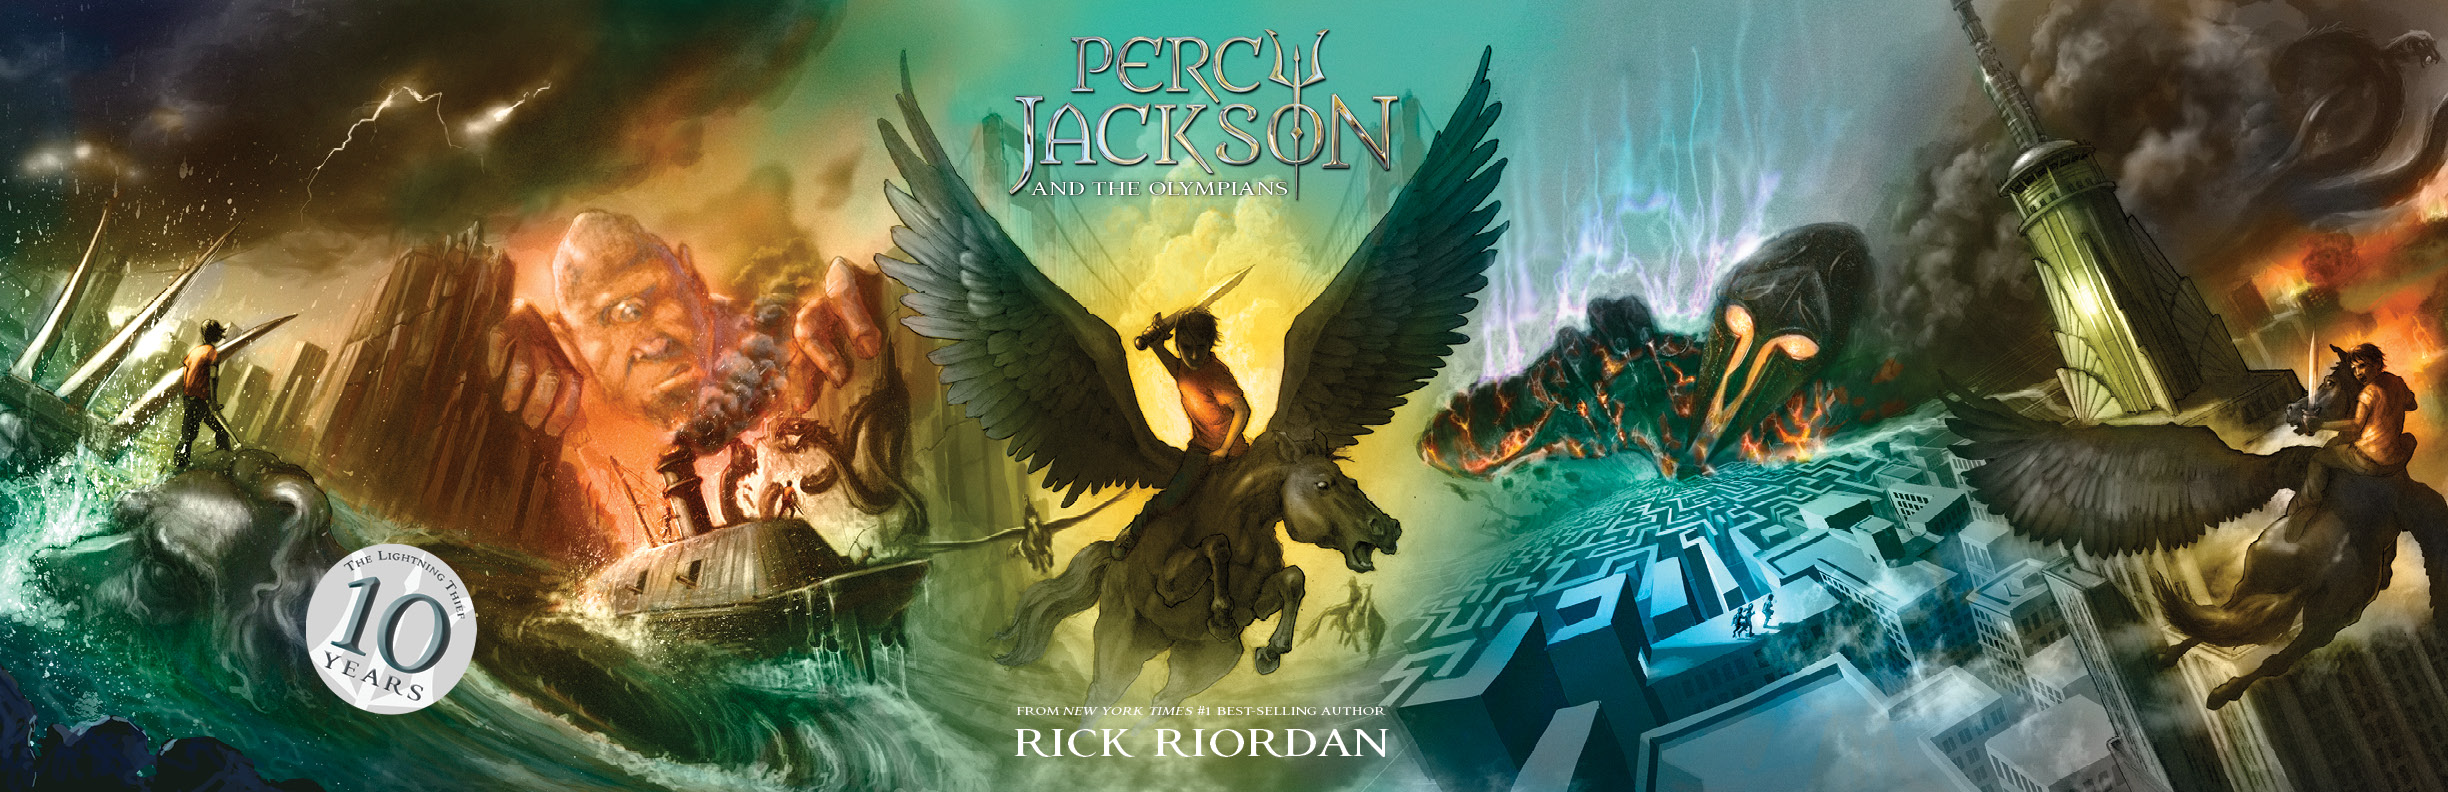 The Top 10 Best Chapters From Percy Jackson And The